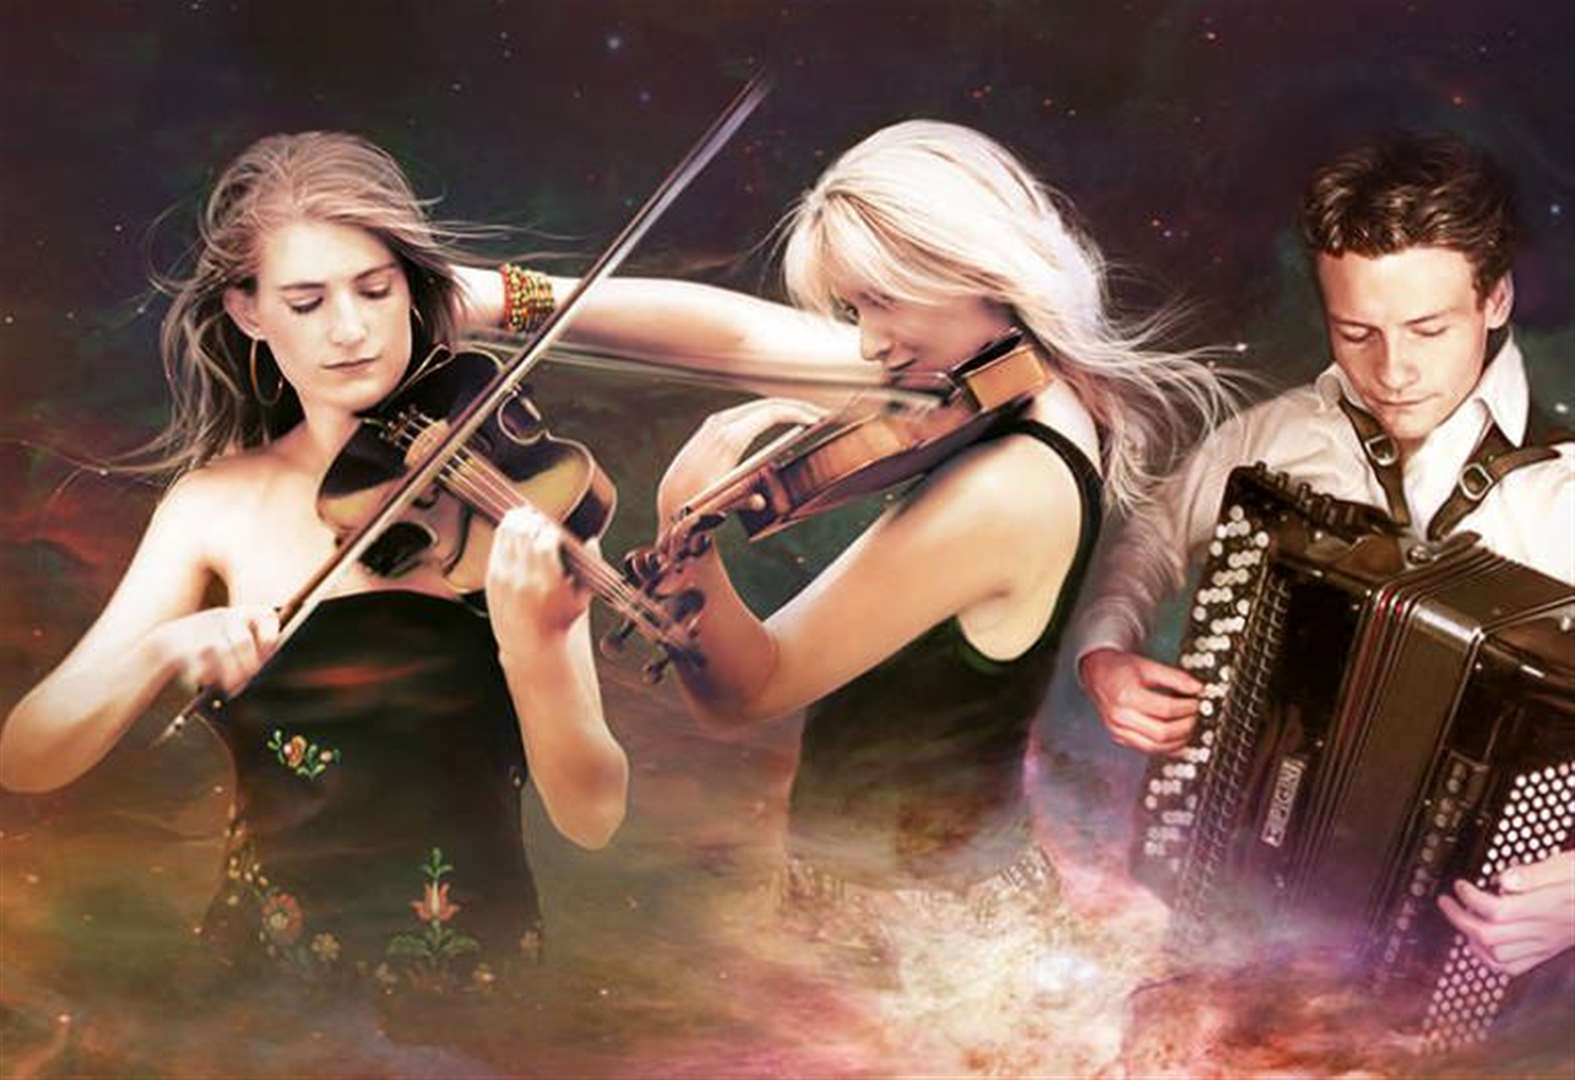 Kosmos Ensemble's blend of world and classical music comes to Nairn